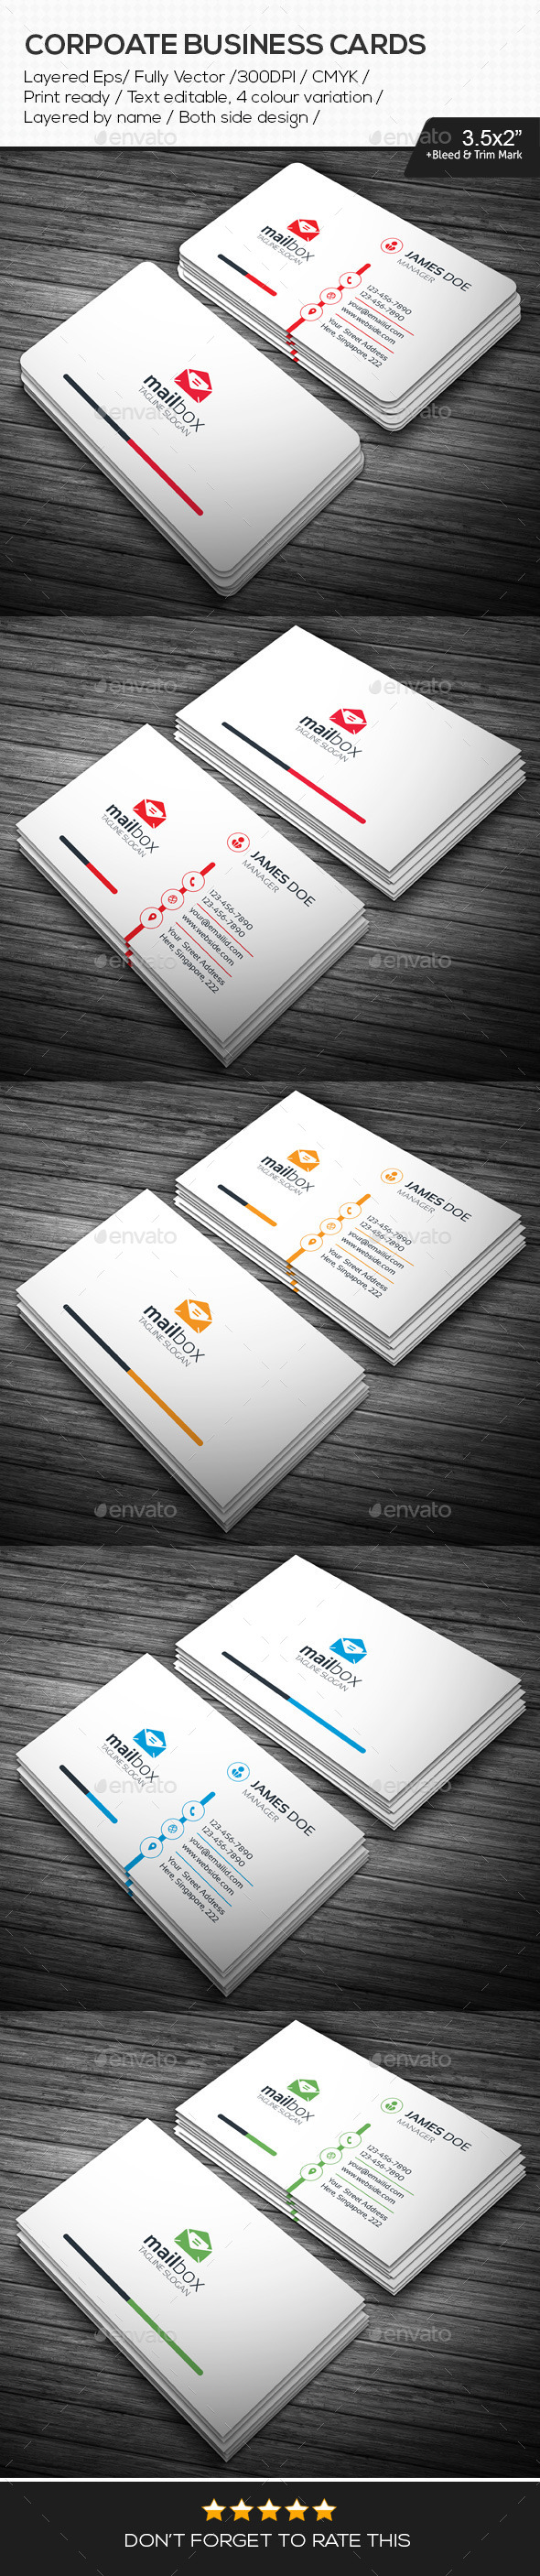 GraphicRiver Mail Box Corporate Business Cards 10947610